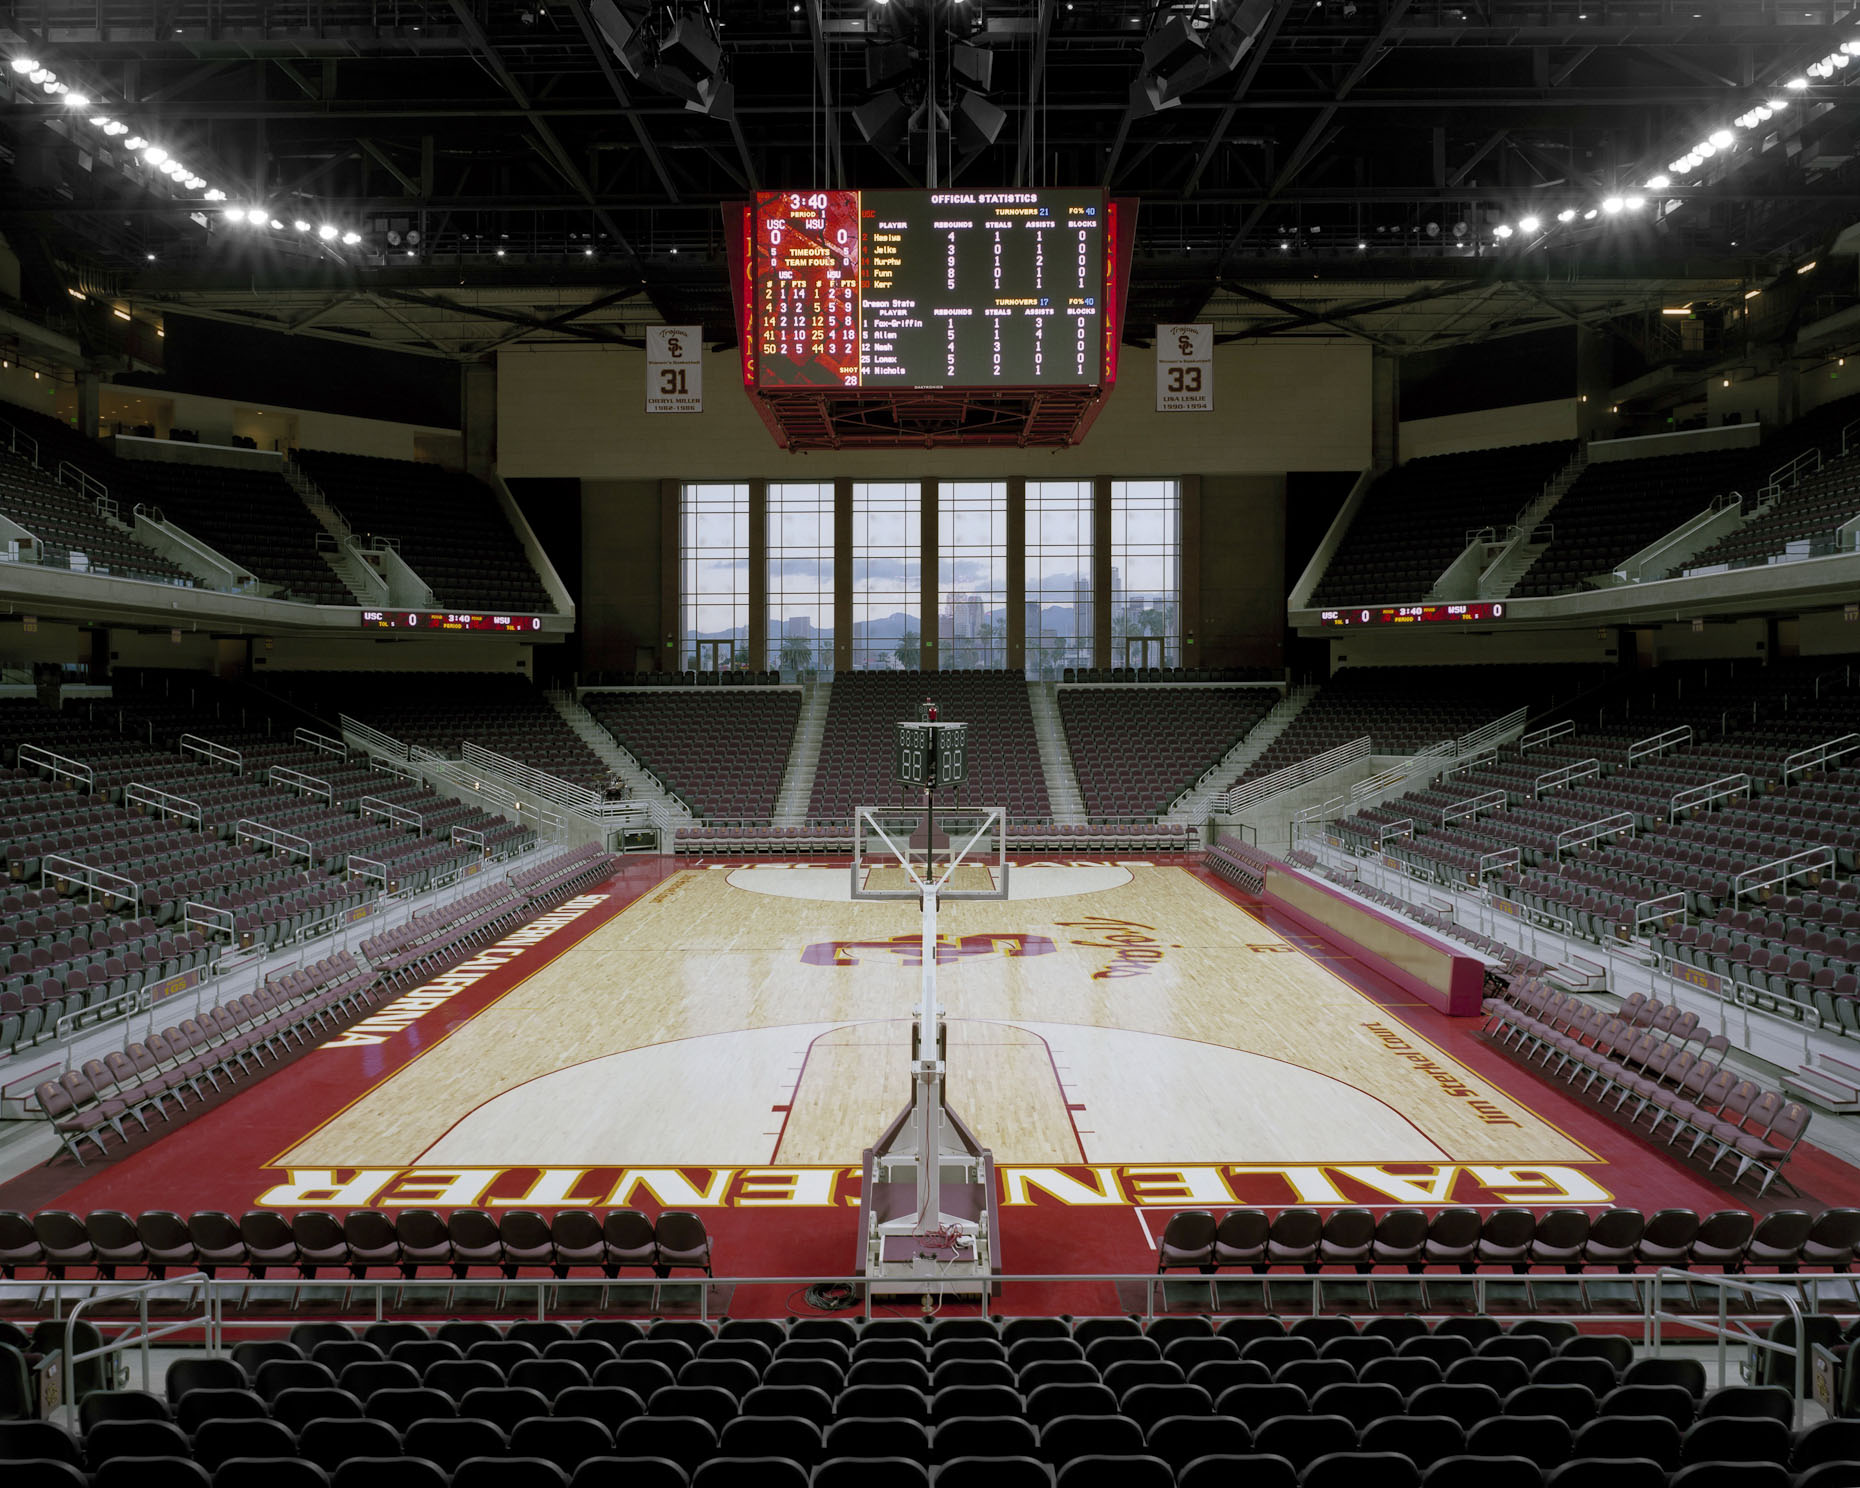 USC Galen Center by HNTB photographed by BRad Feinknopf based in Columbus, Ohio